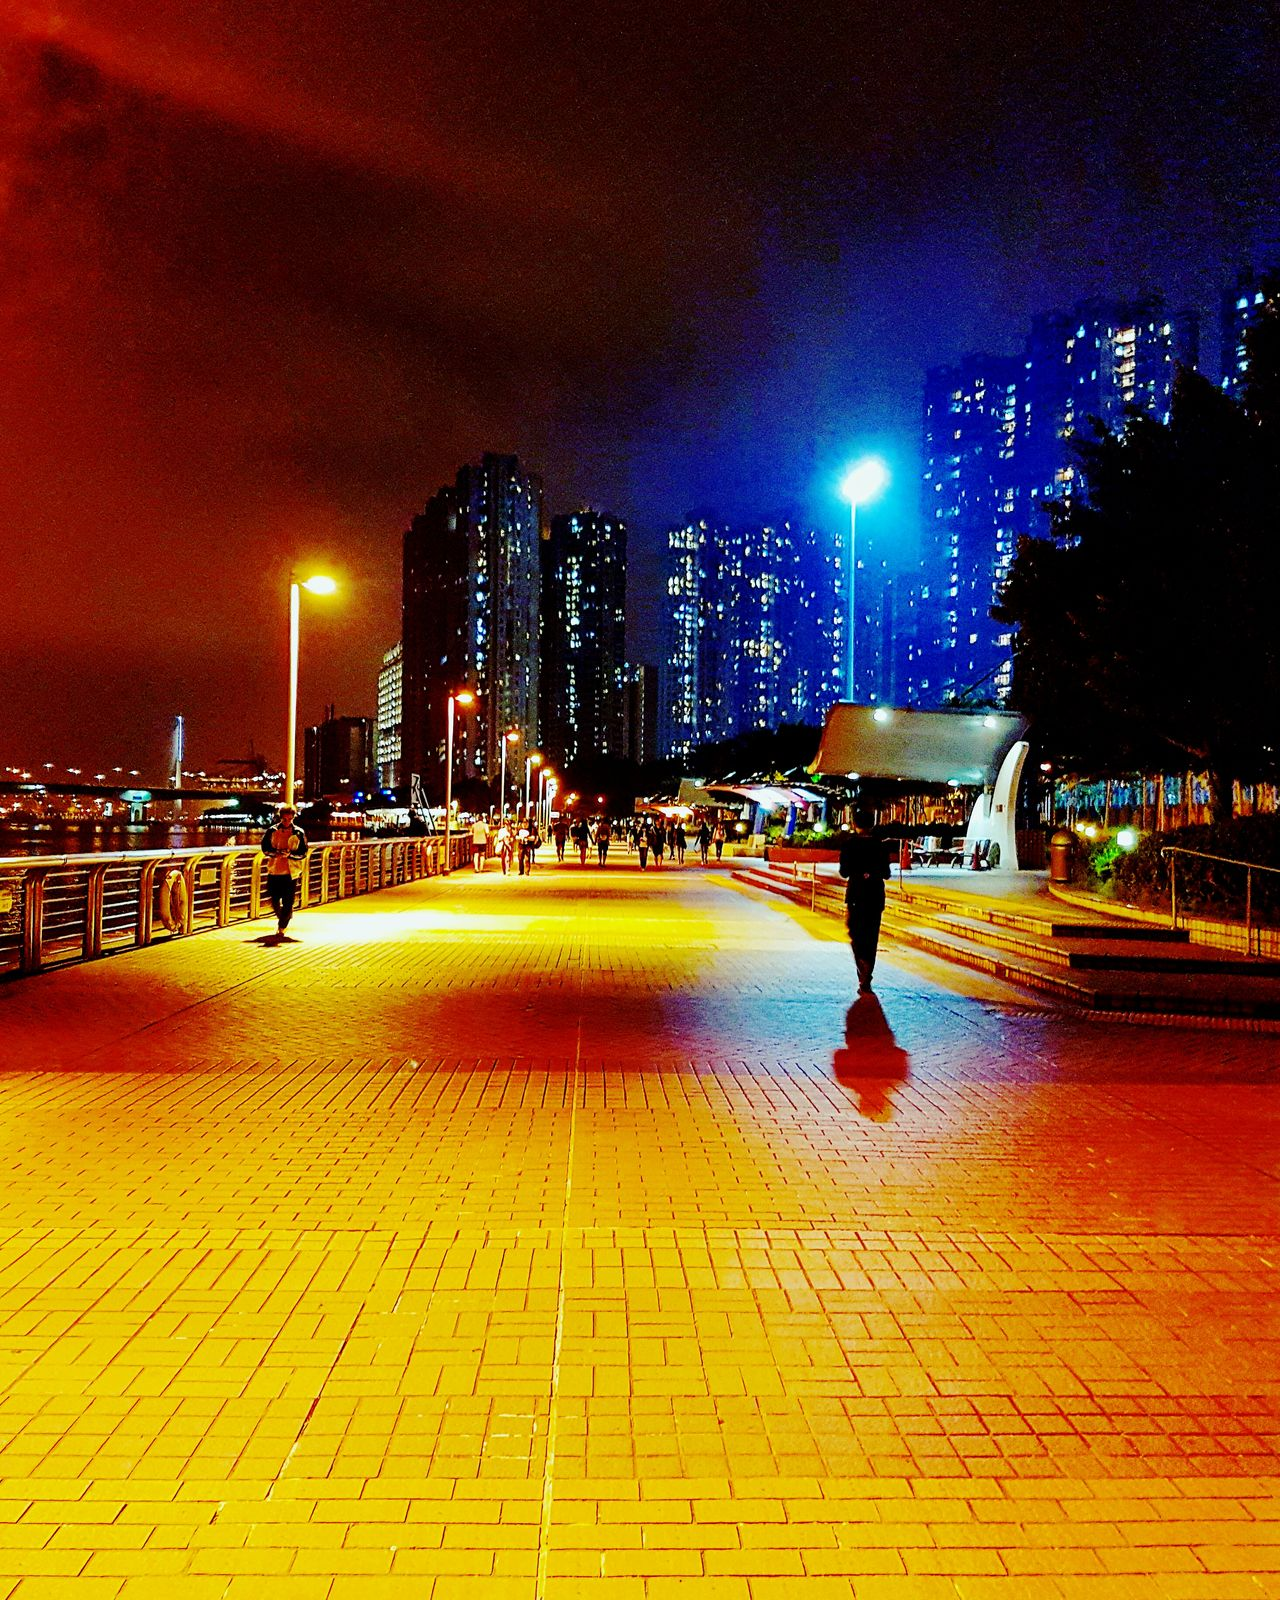 Illuminated Real People Built Structure Lighting Equipment Lifestyles One Person Night Outdoors Full Length Architecture Low Section Sky City People HongKong Seaside Nightscenes Blues Lamps Lonely 藍色街燈 VSCO S7edgephotography S7 Edge